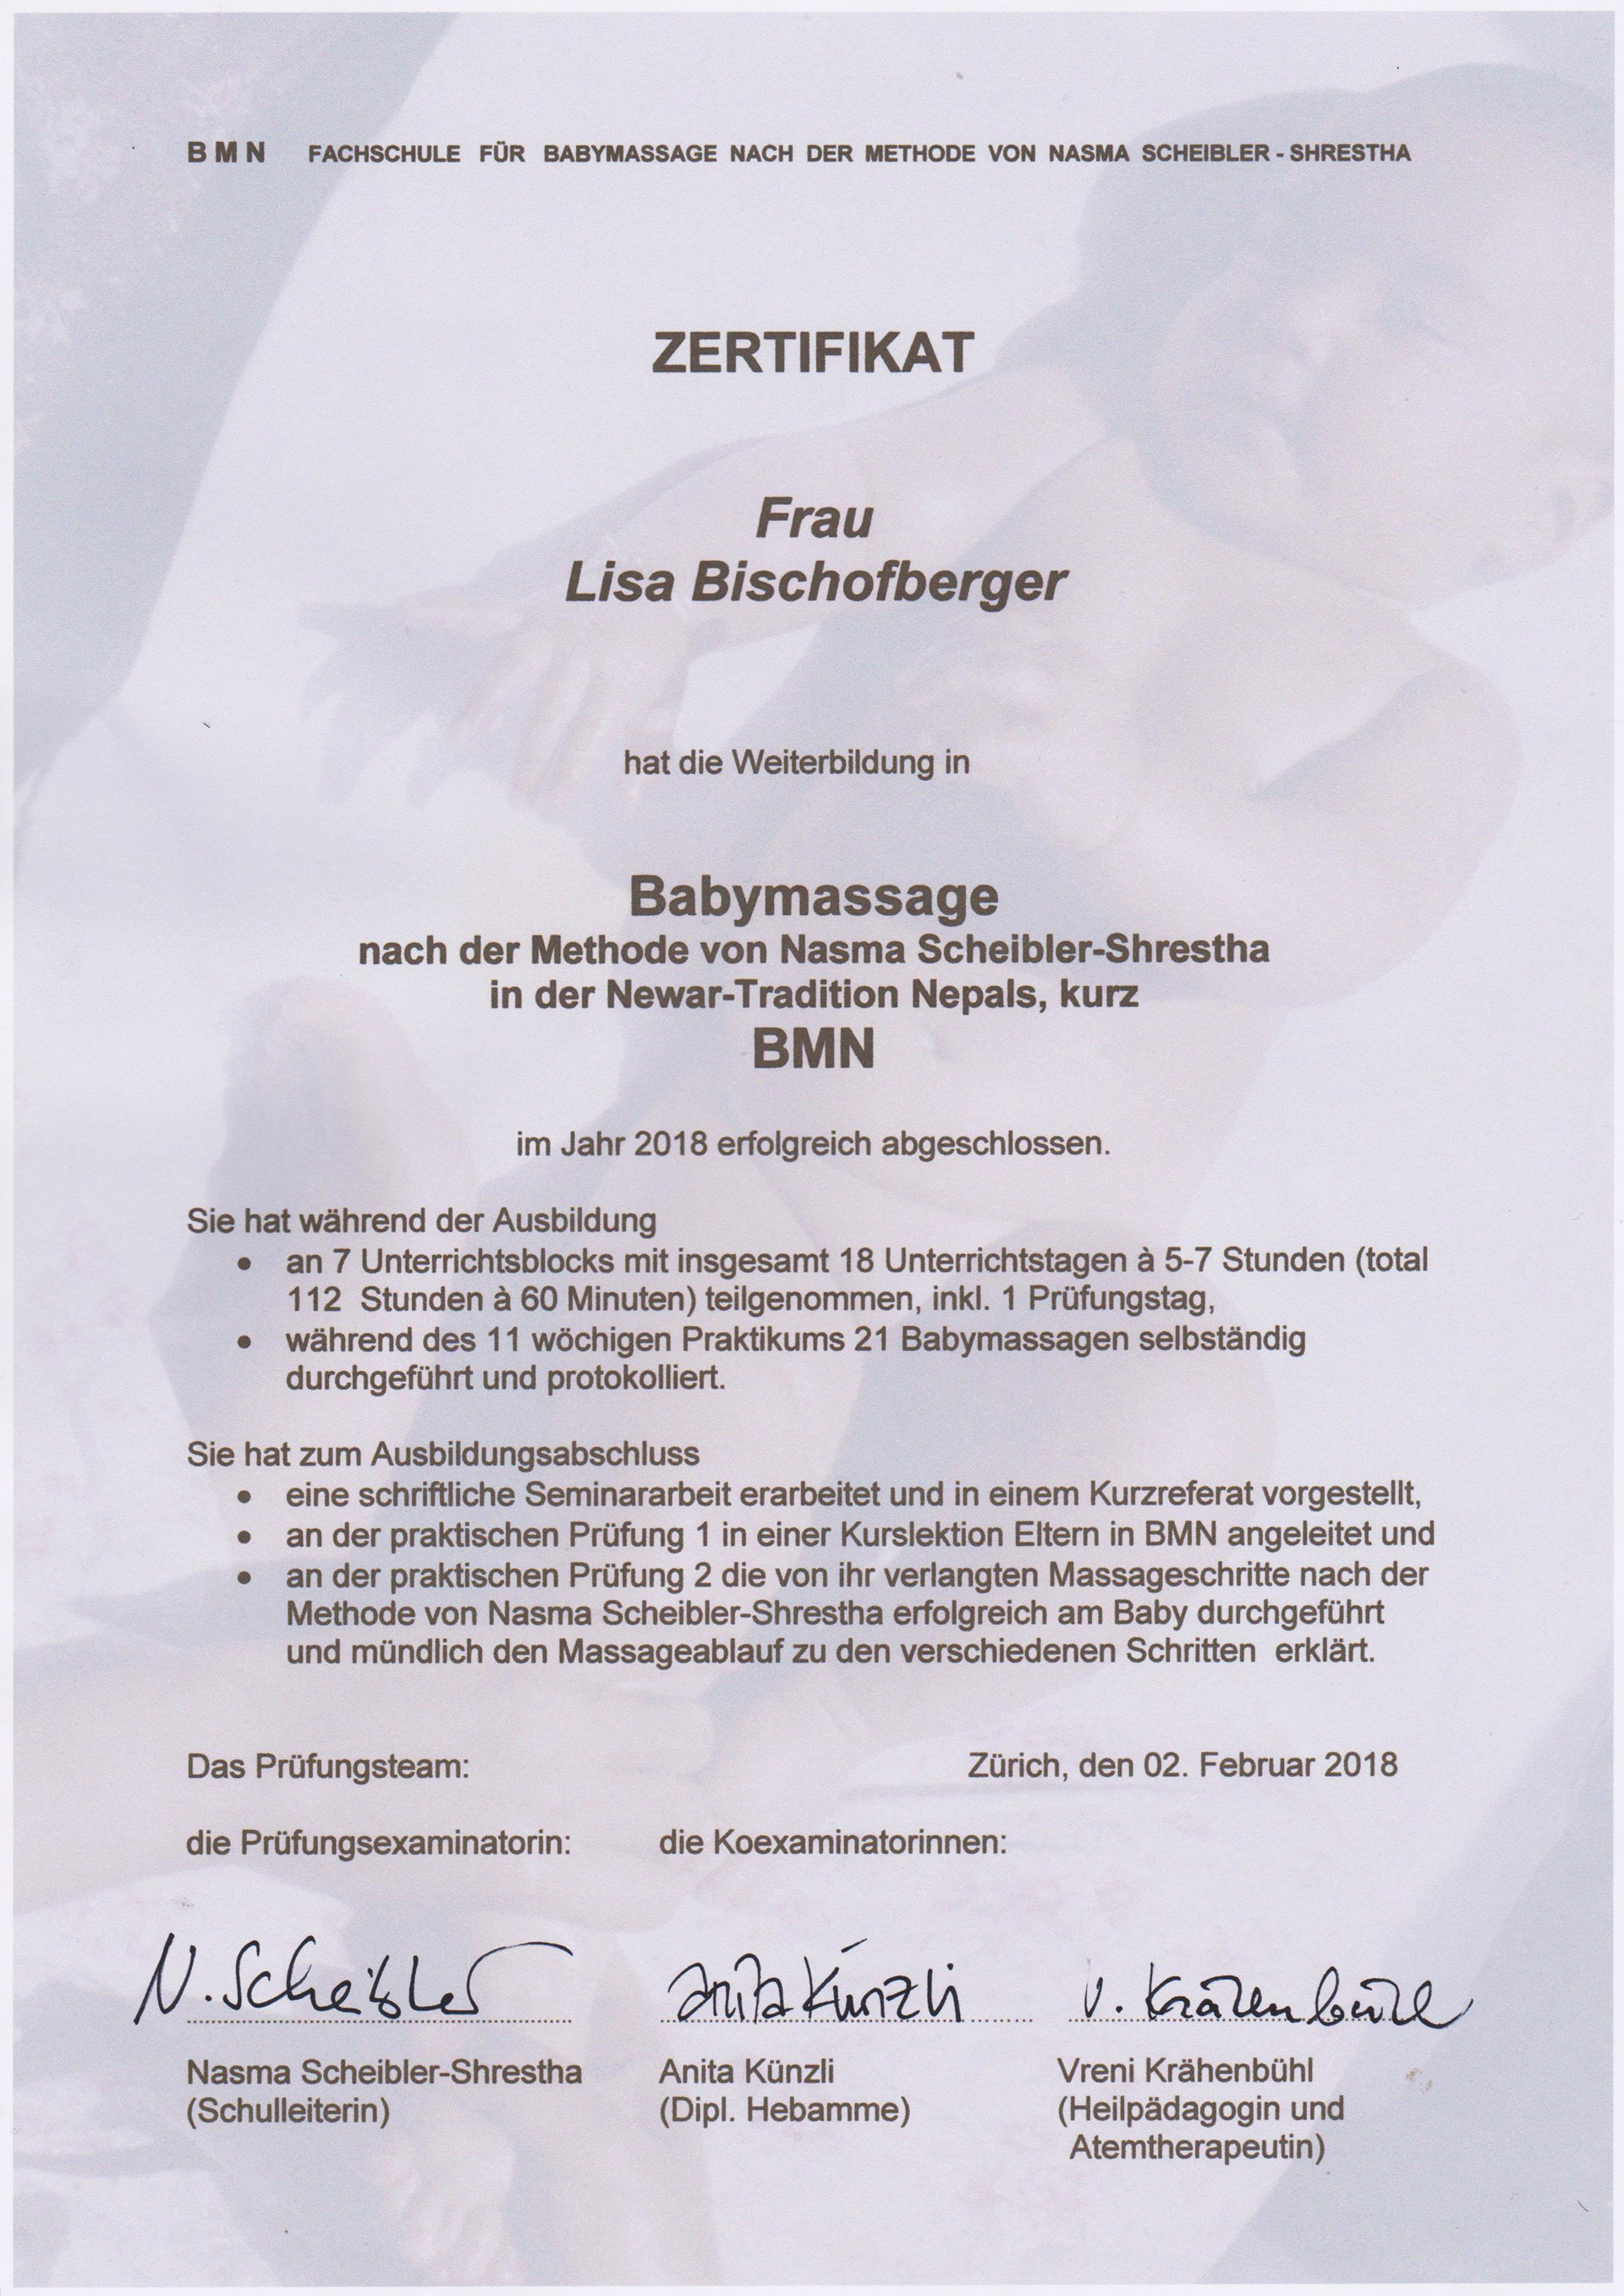 Zertifikat Babymassage nach der Methode von Nasma Scheibler-Shrestha in der Newar-Tradition Nepals, kurz BMN